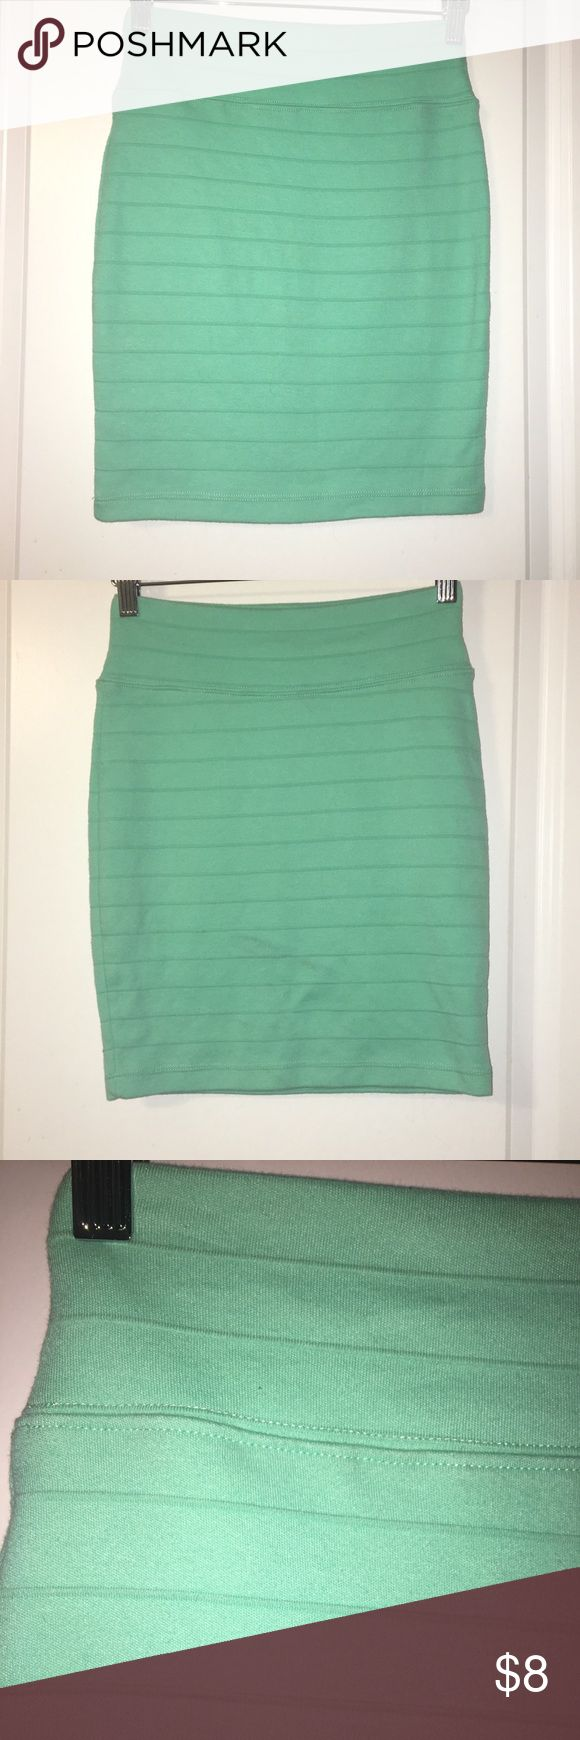 Forever 21 mint green skirt - S Mint green skirt, meant to fit tight! Super cute, can dress it up or down! Forever 21 Skirts